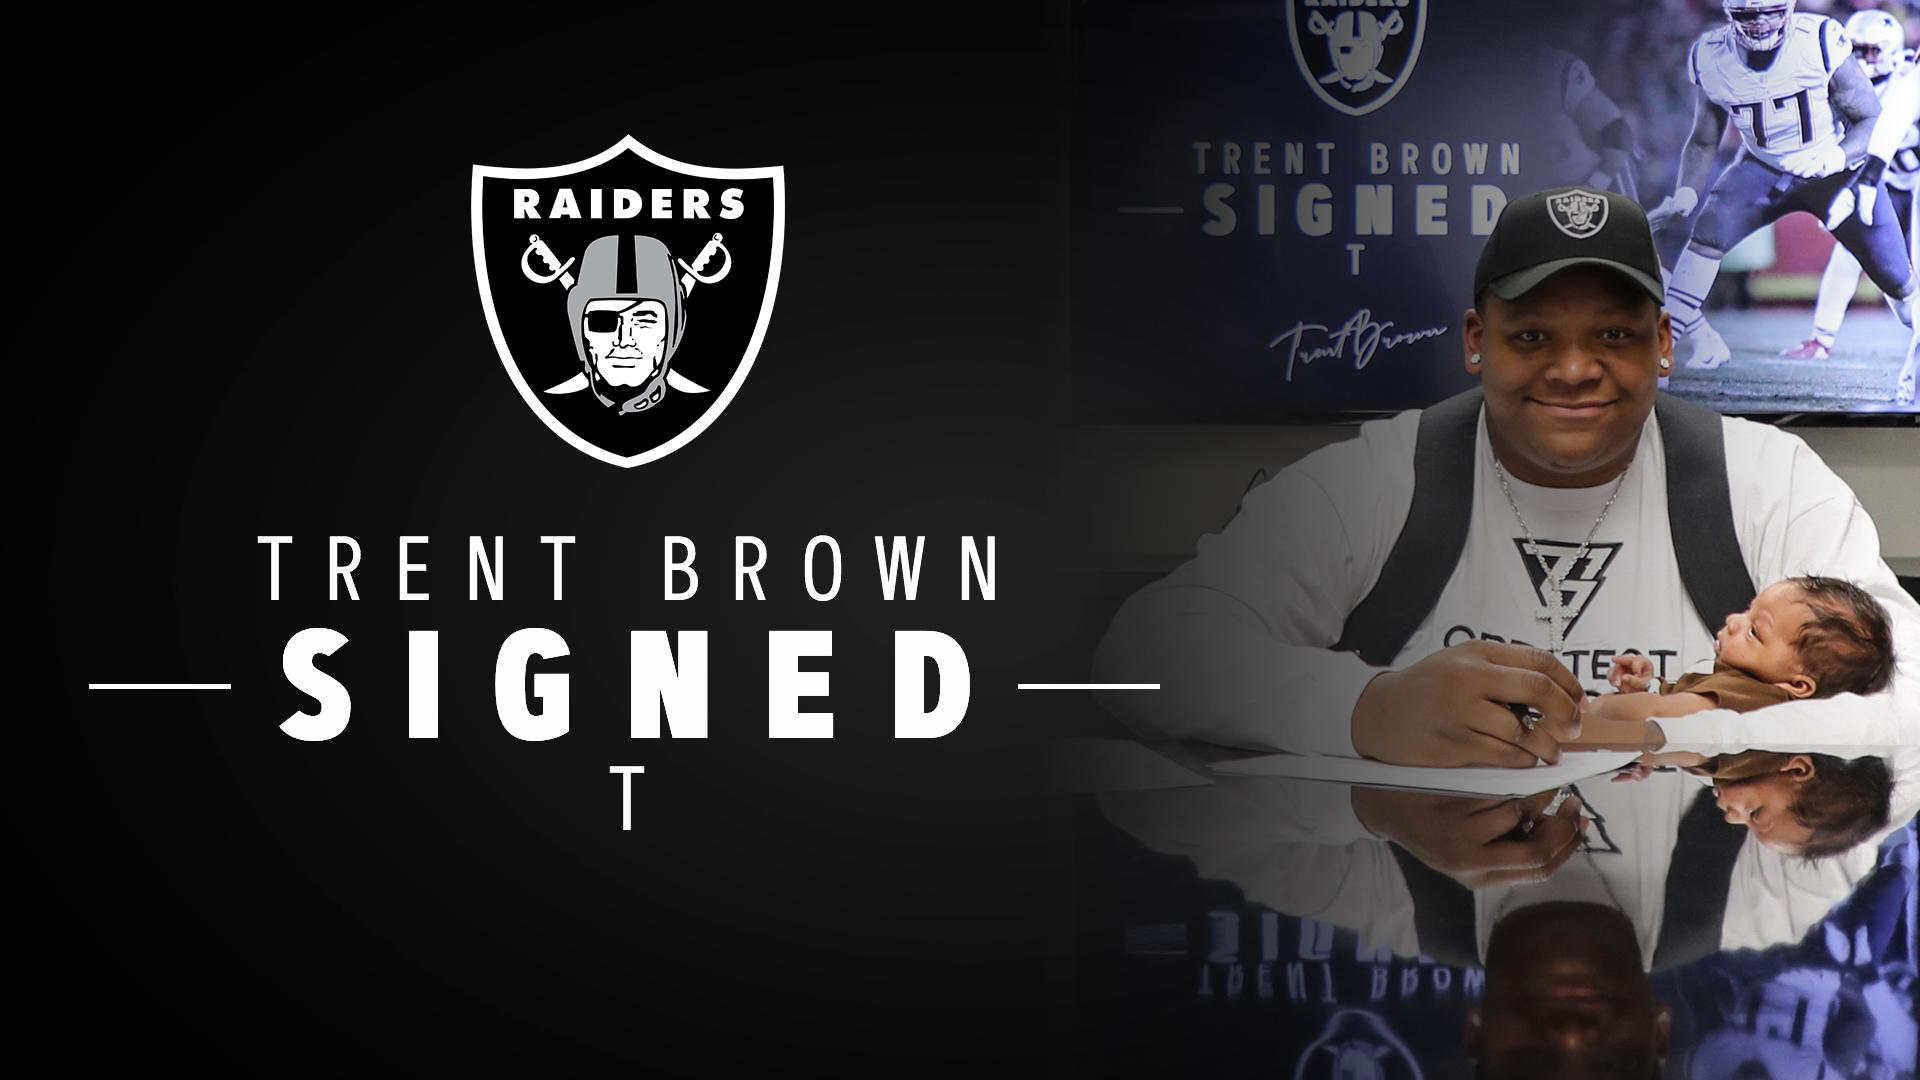 Another piece in place.  We have signed T @Trent Brown: https://t.co/sNCWm1ls3y #RaiderNation https://t.co/XG1j6uPBxg